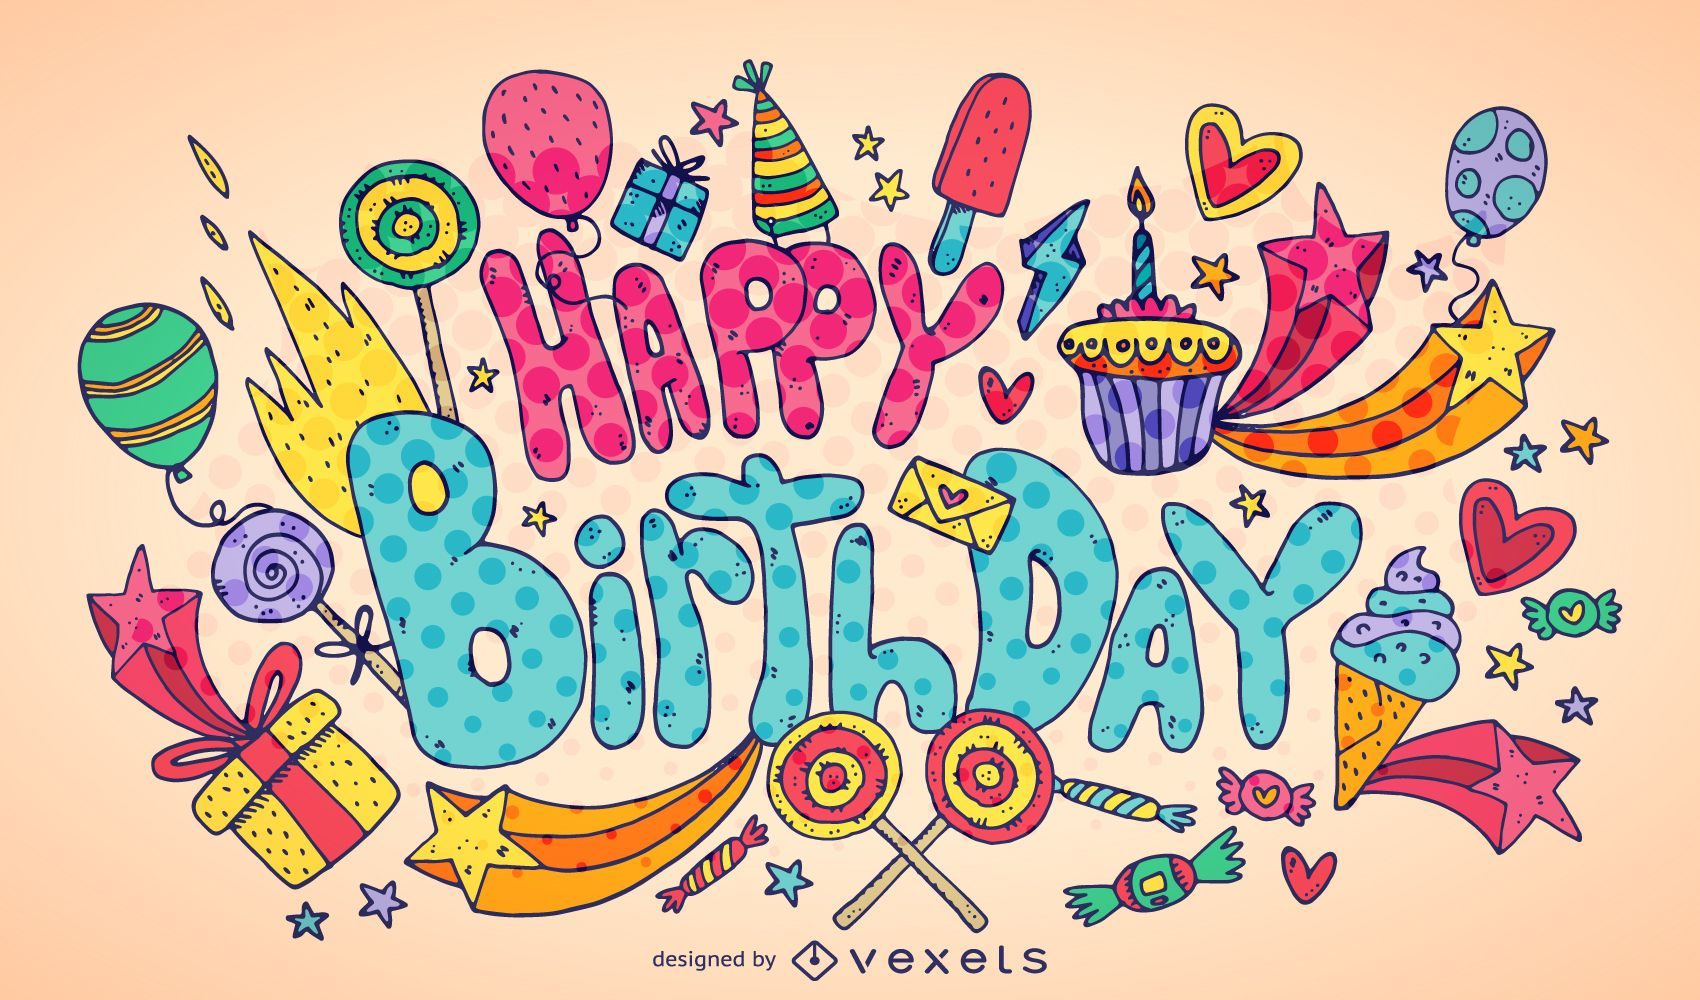 Kids Birthday Party Artistic Poster Design Vector Download